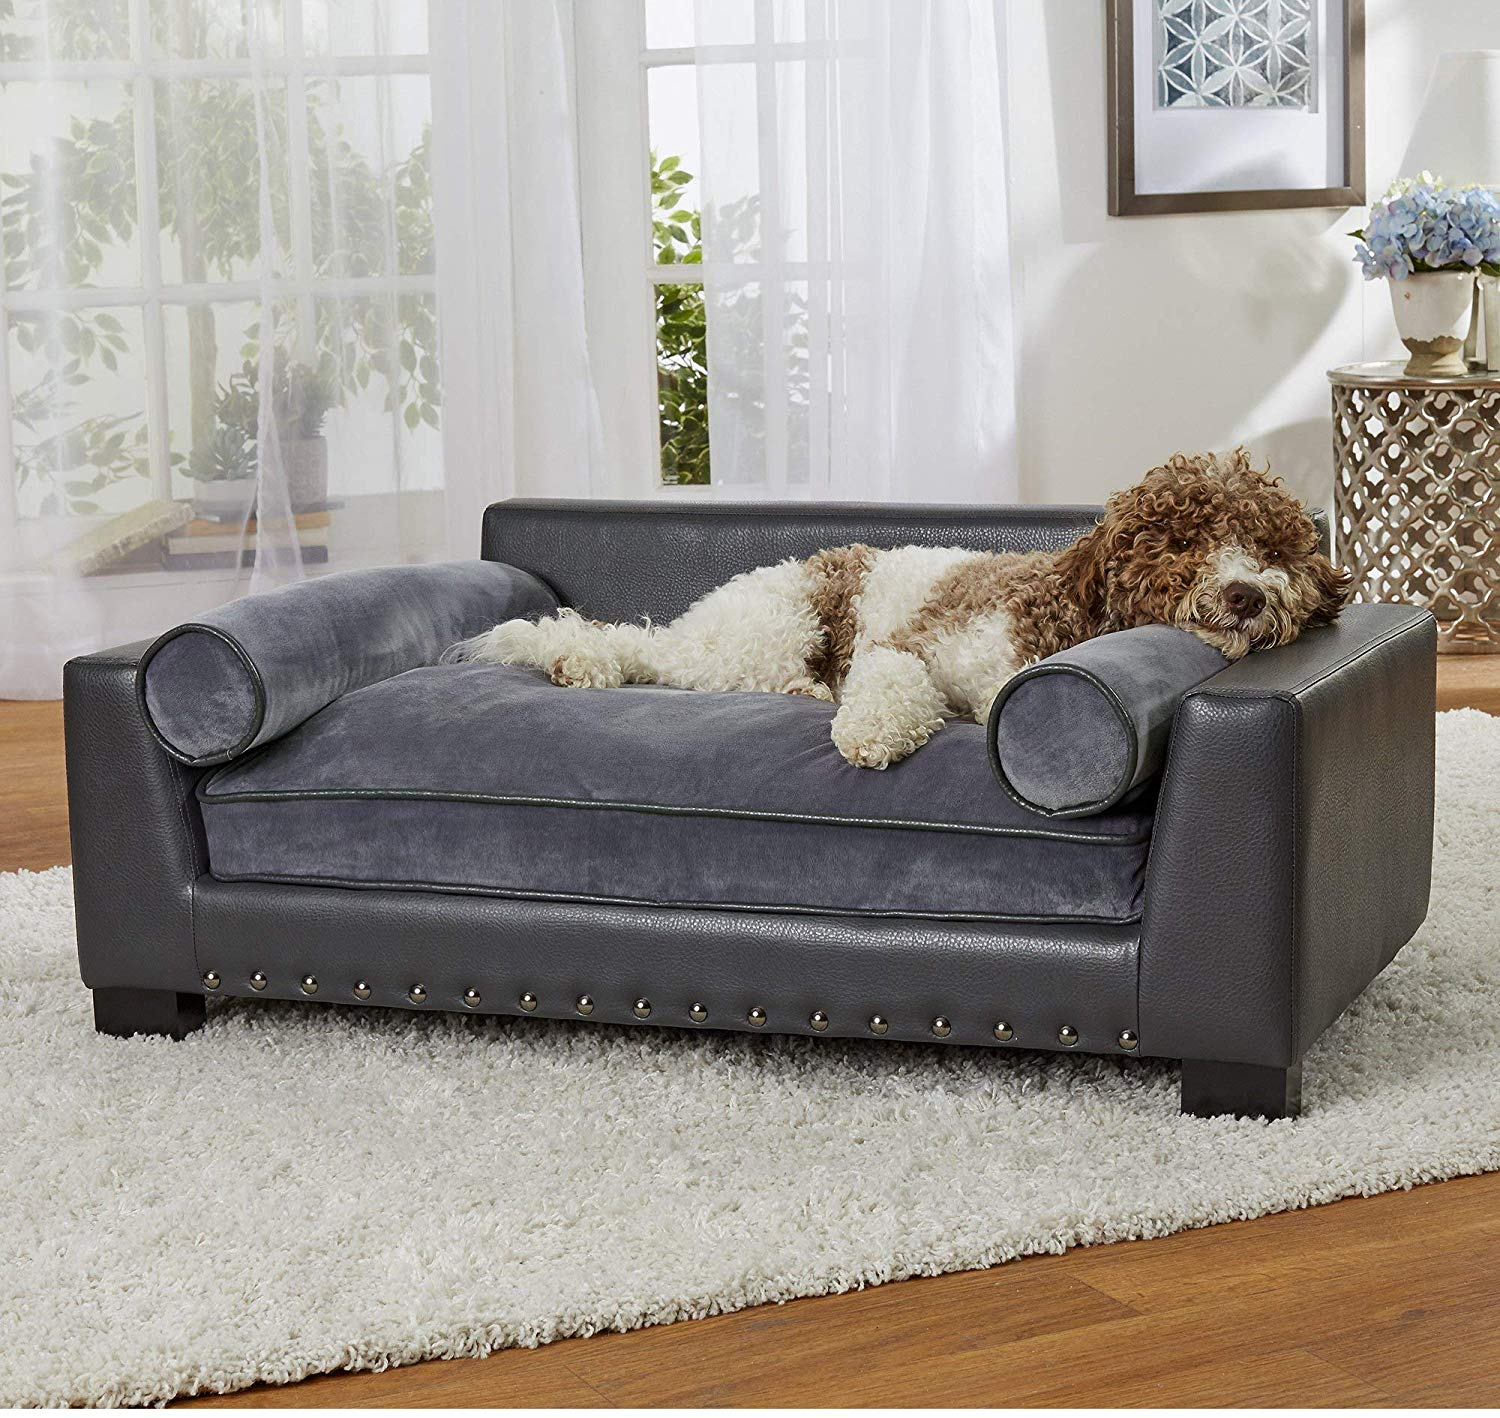 Best Couch For Pets Discover This